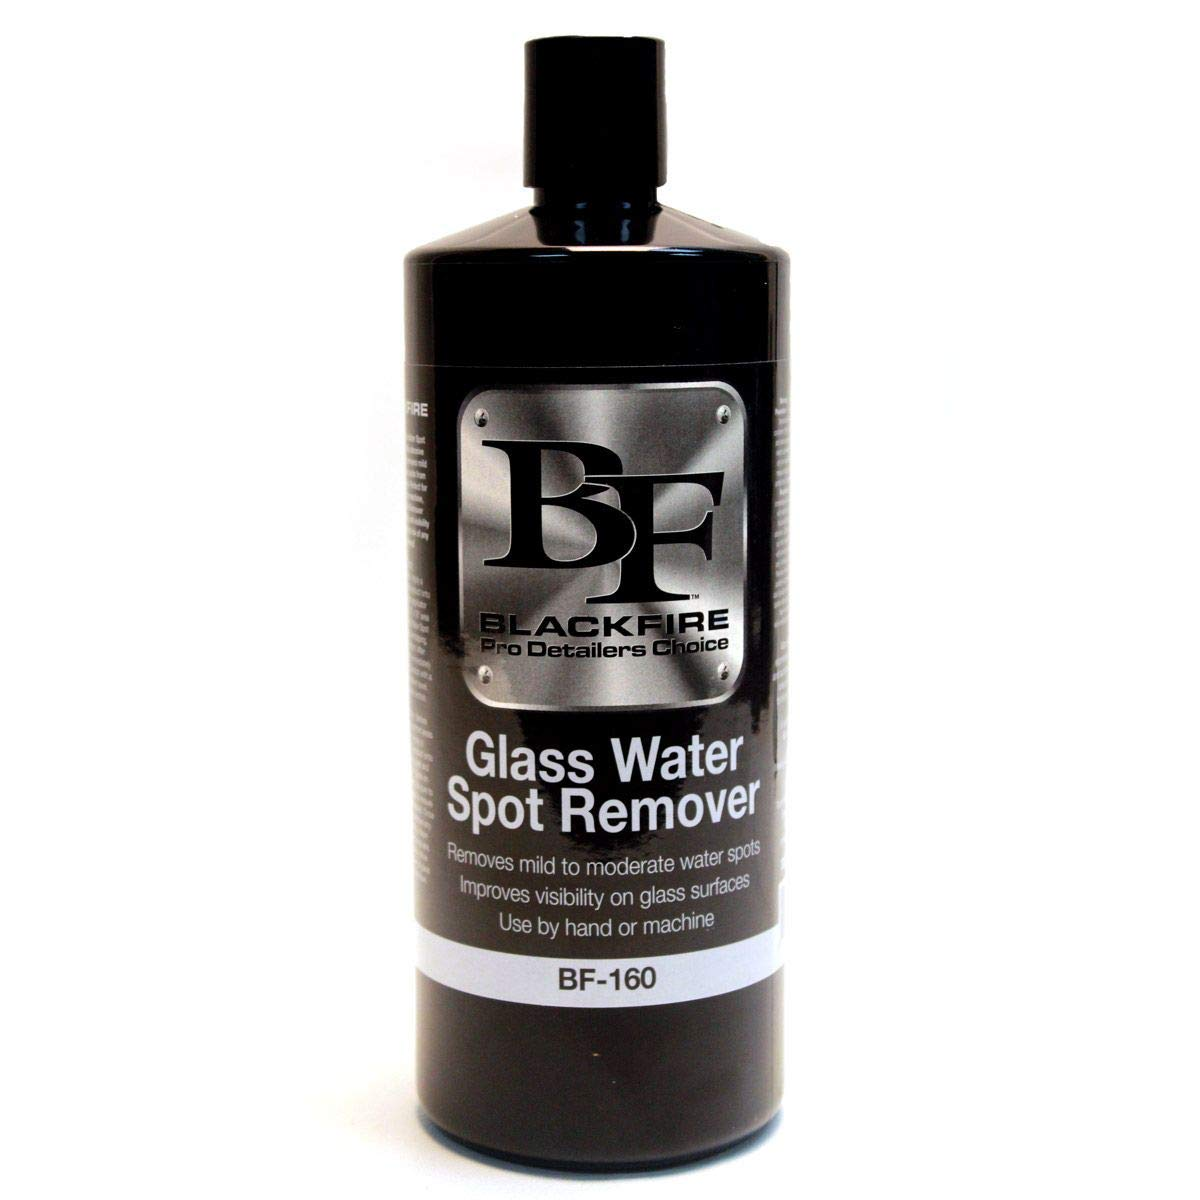 Blackfire Pro Detailers Choice BF-160 Glass Water Spot Remover, 32. Fluid_Ounces